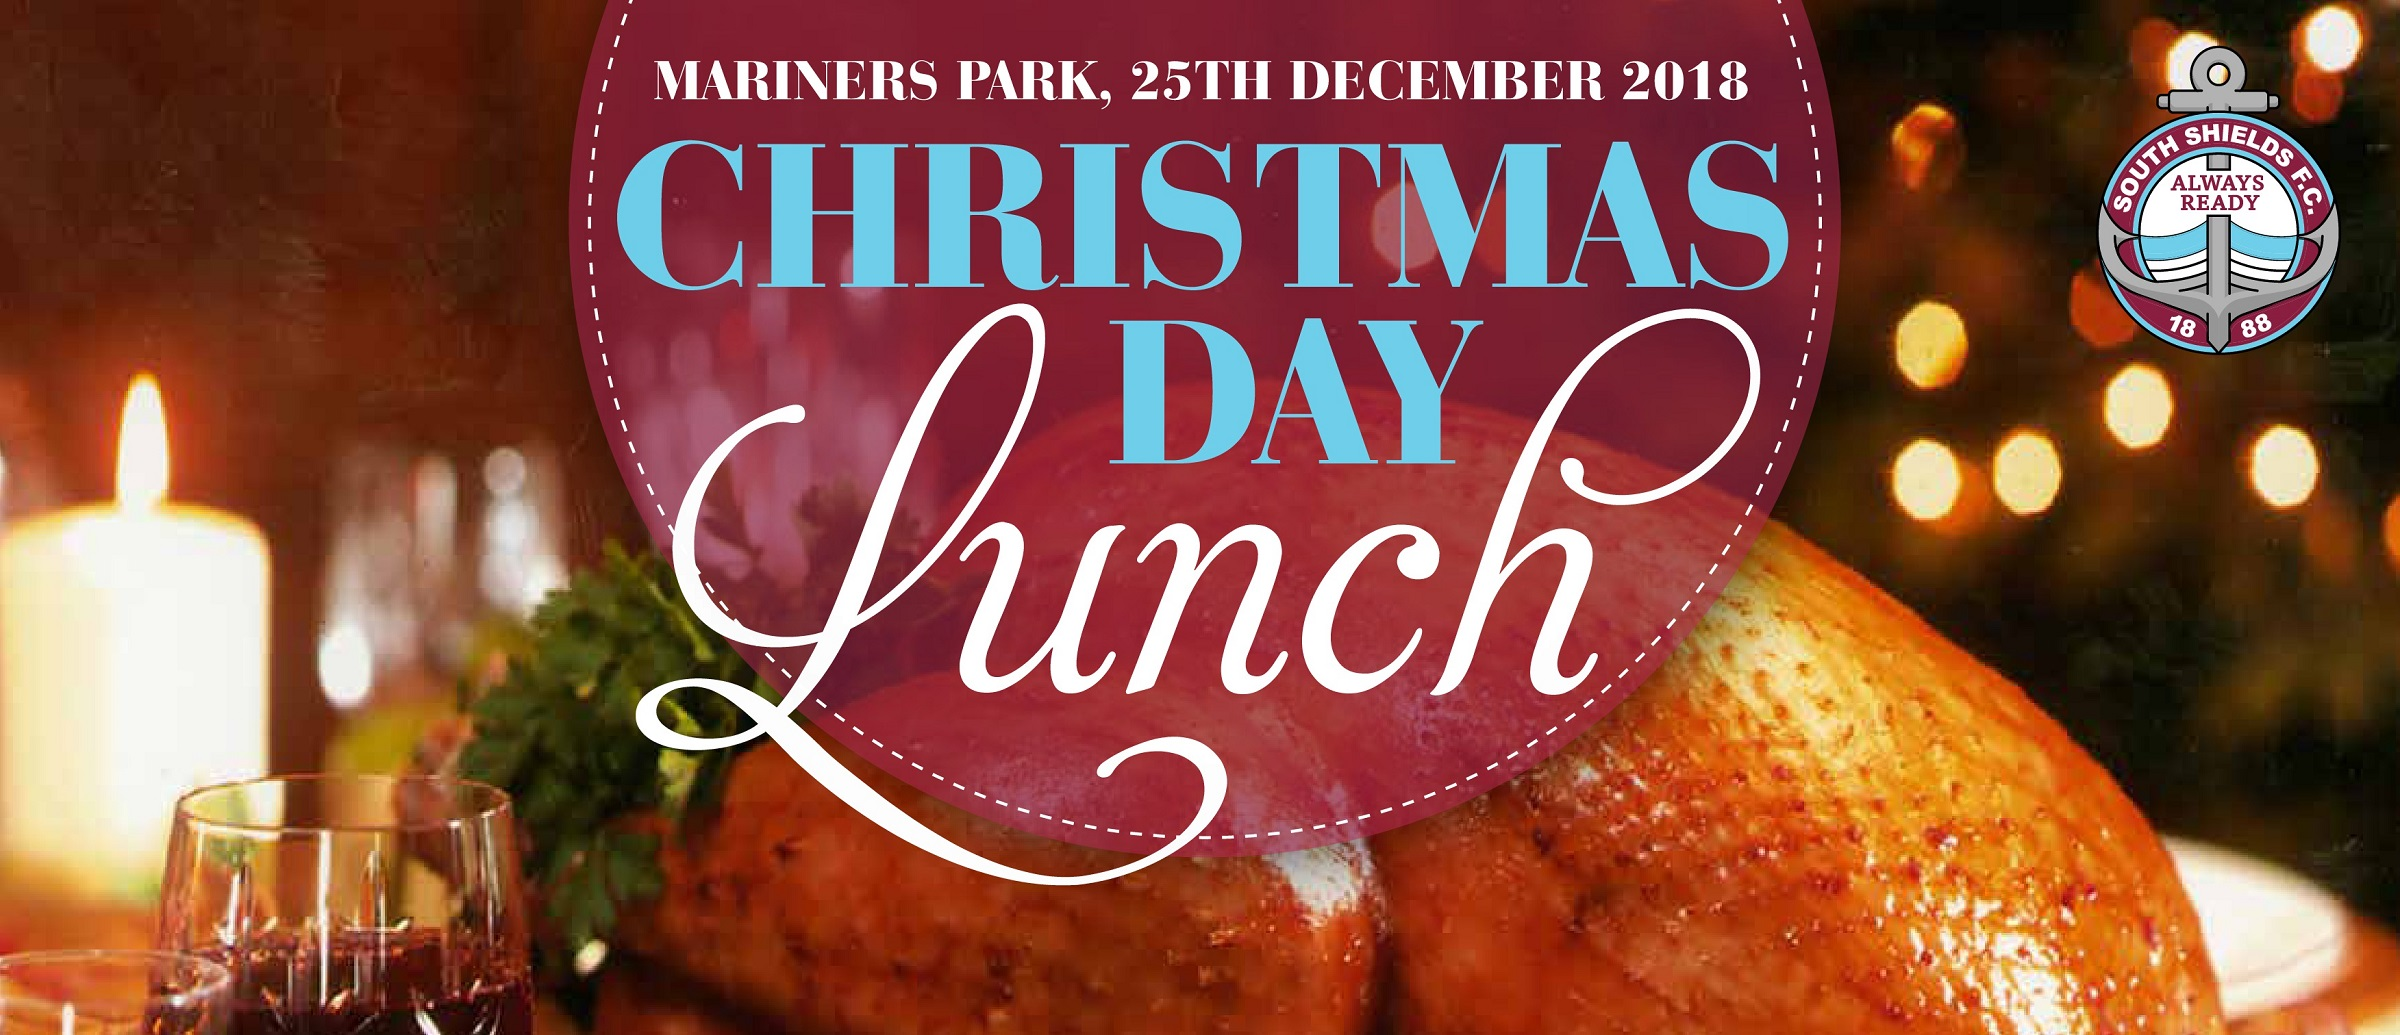 Book now for Christmas Day lunch at Mariners Park!